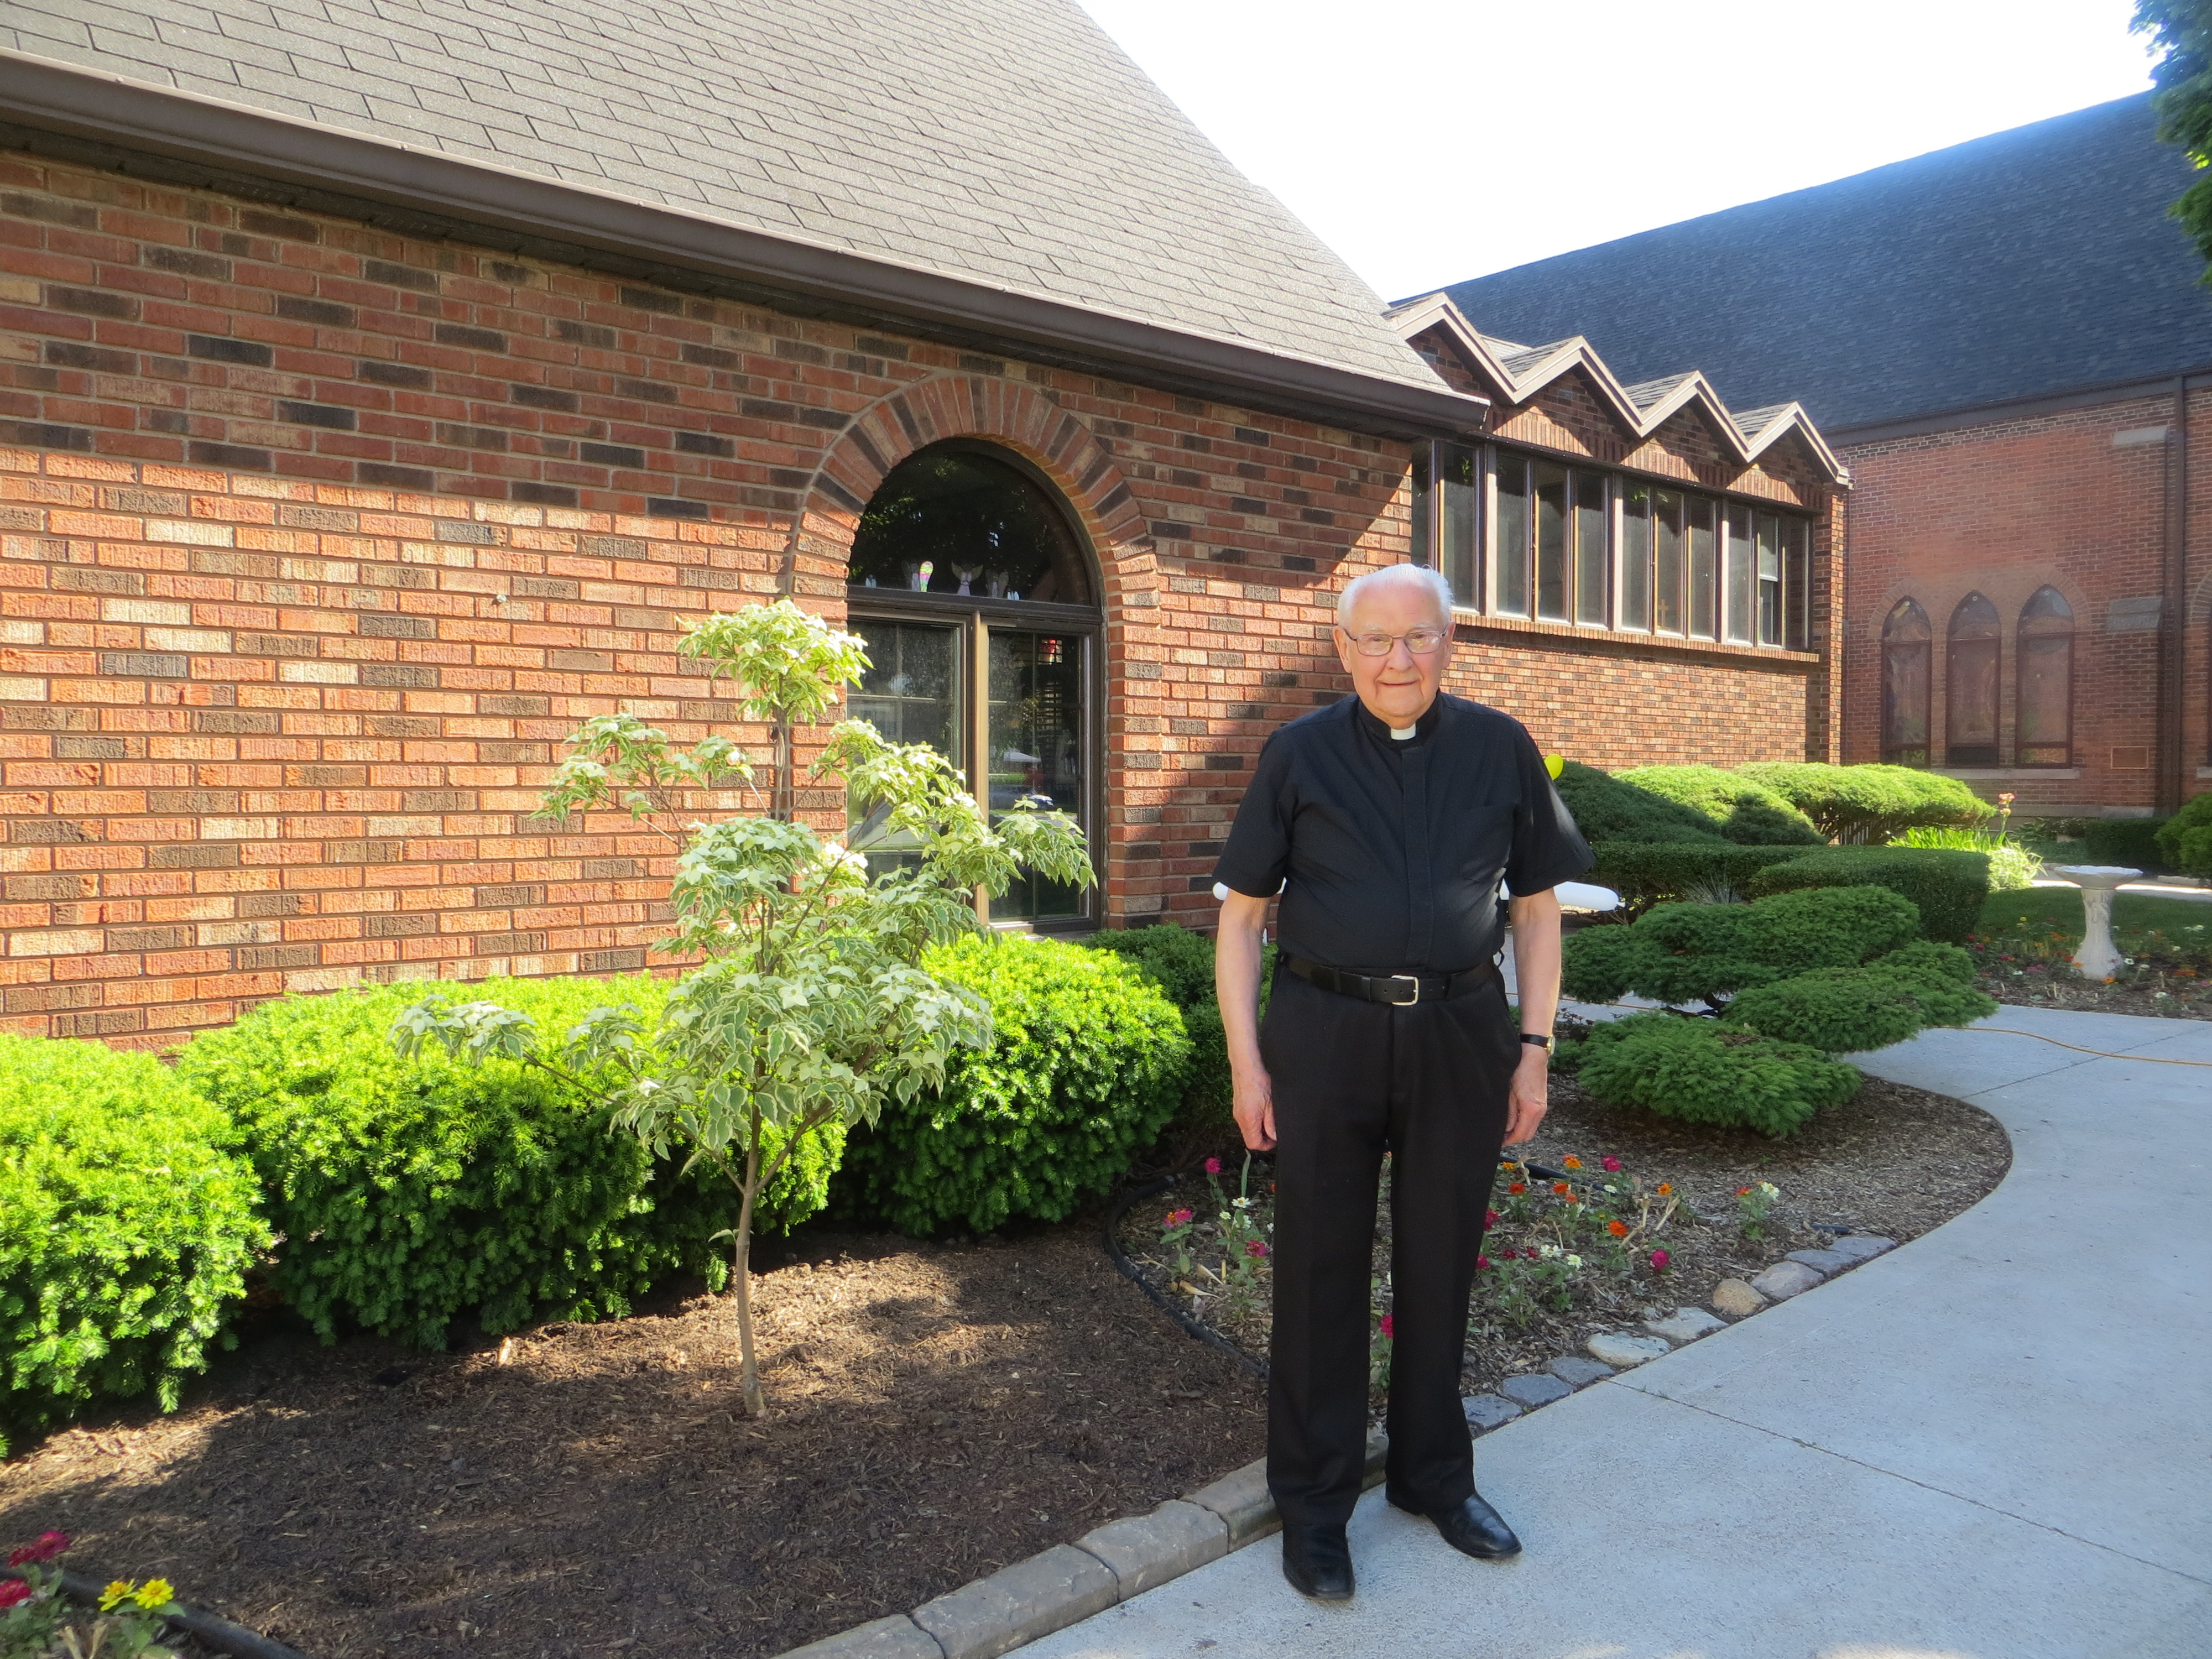 June 8th, 2020 - Archdeacon Ron beside the Samaritan Dogwood planted in honour of his 90th birthday